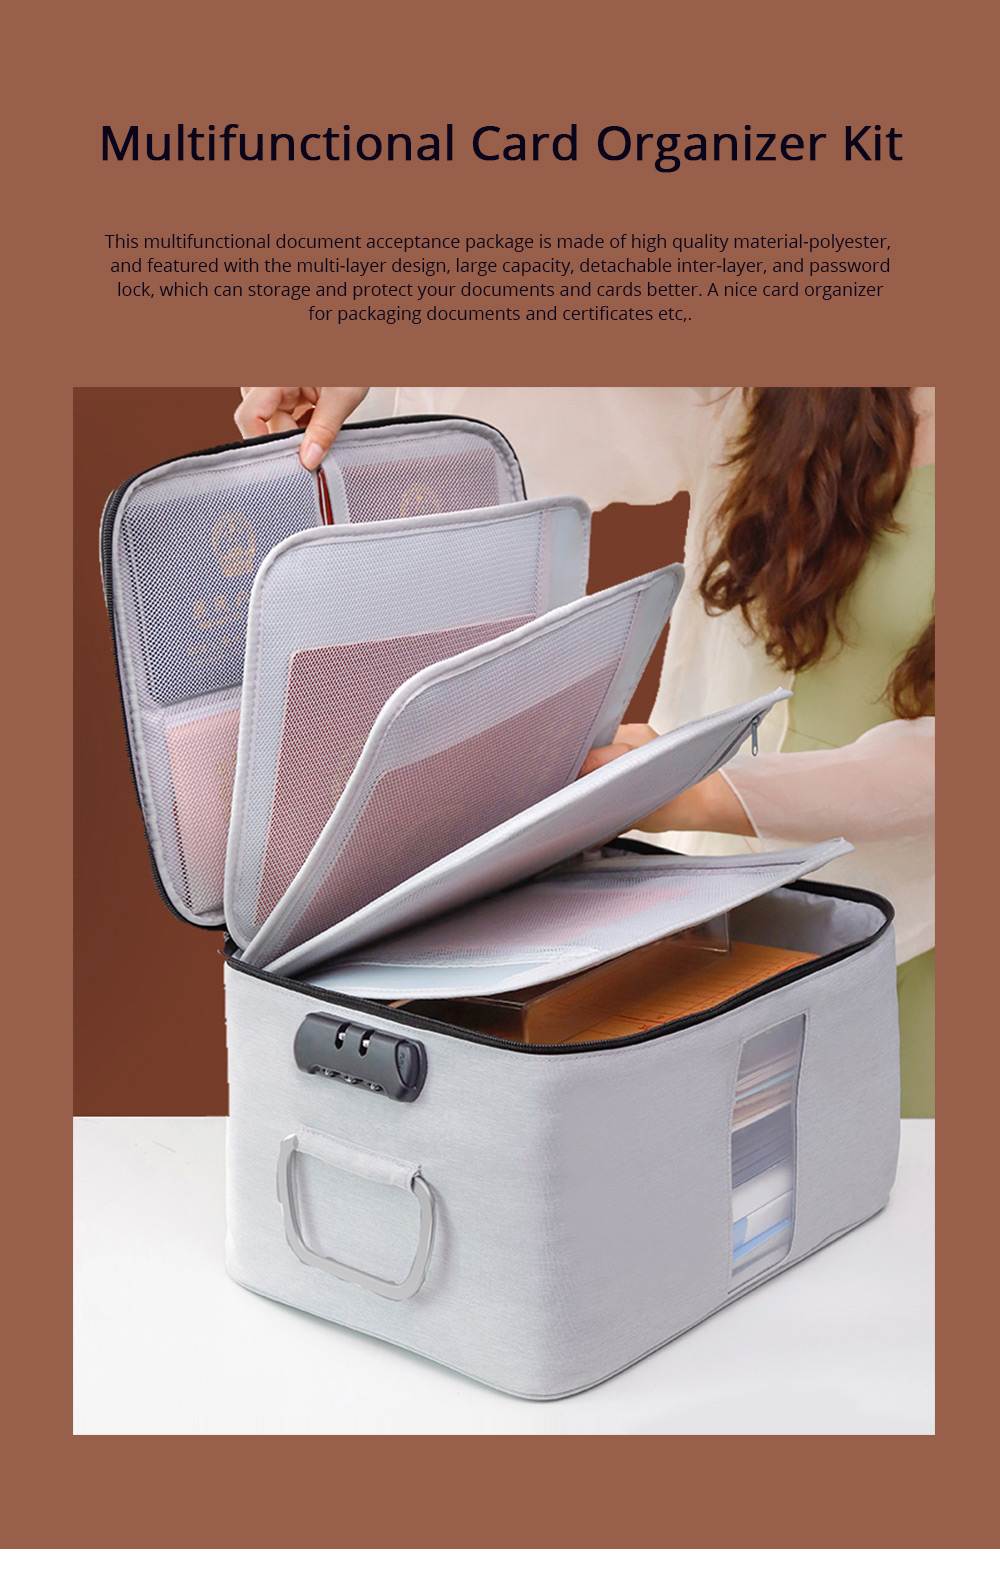 Multifunctional Card Organizer Kit Document Package with Large Capacity and Detachable Inter-layer Passport Packing Box 0